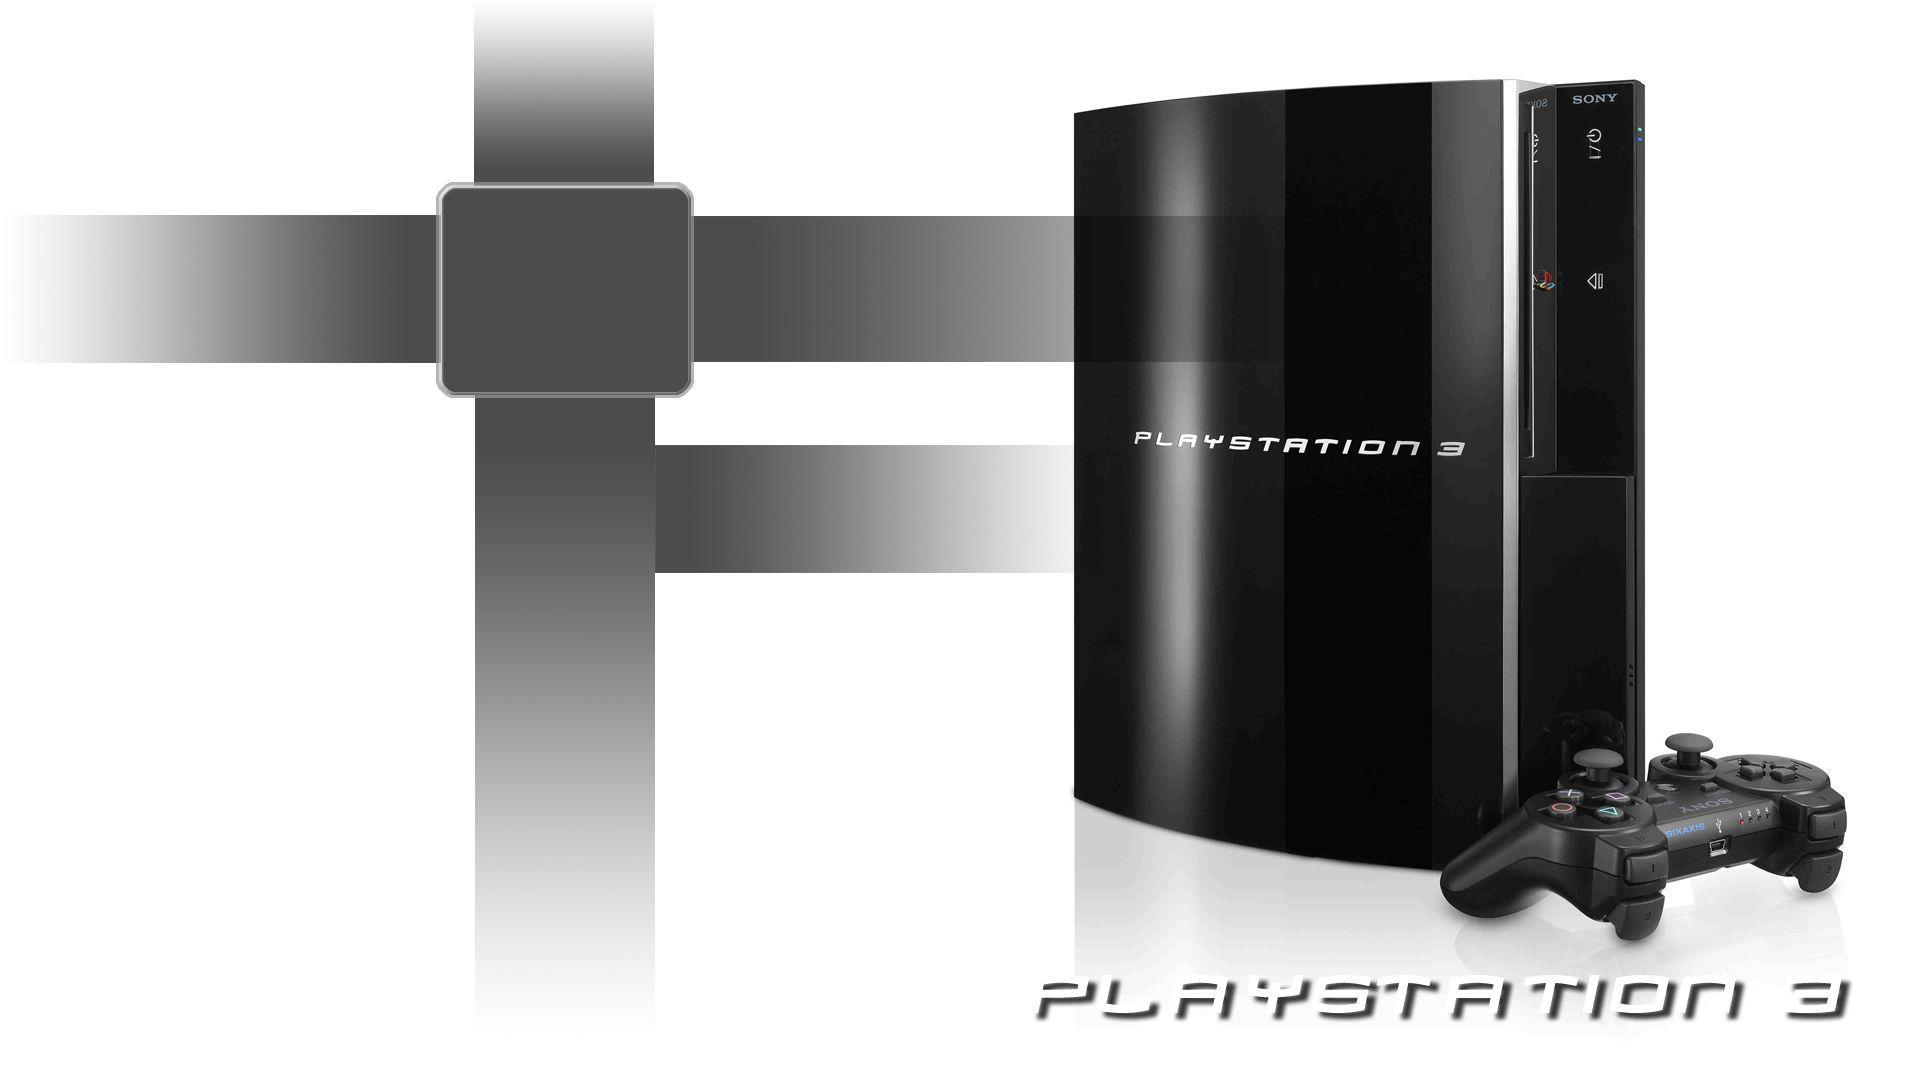 ps3 wallpapers 1080p mass - photo #22